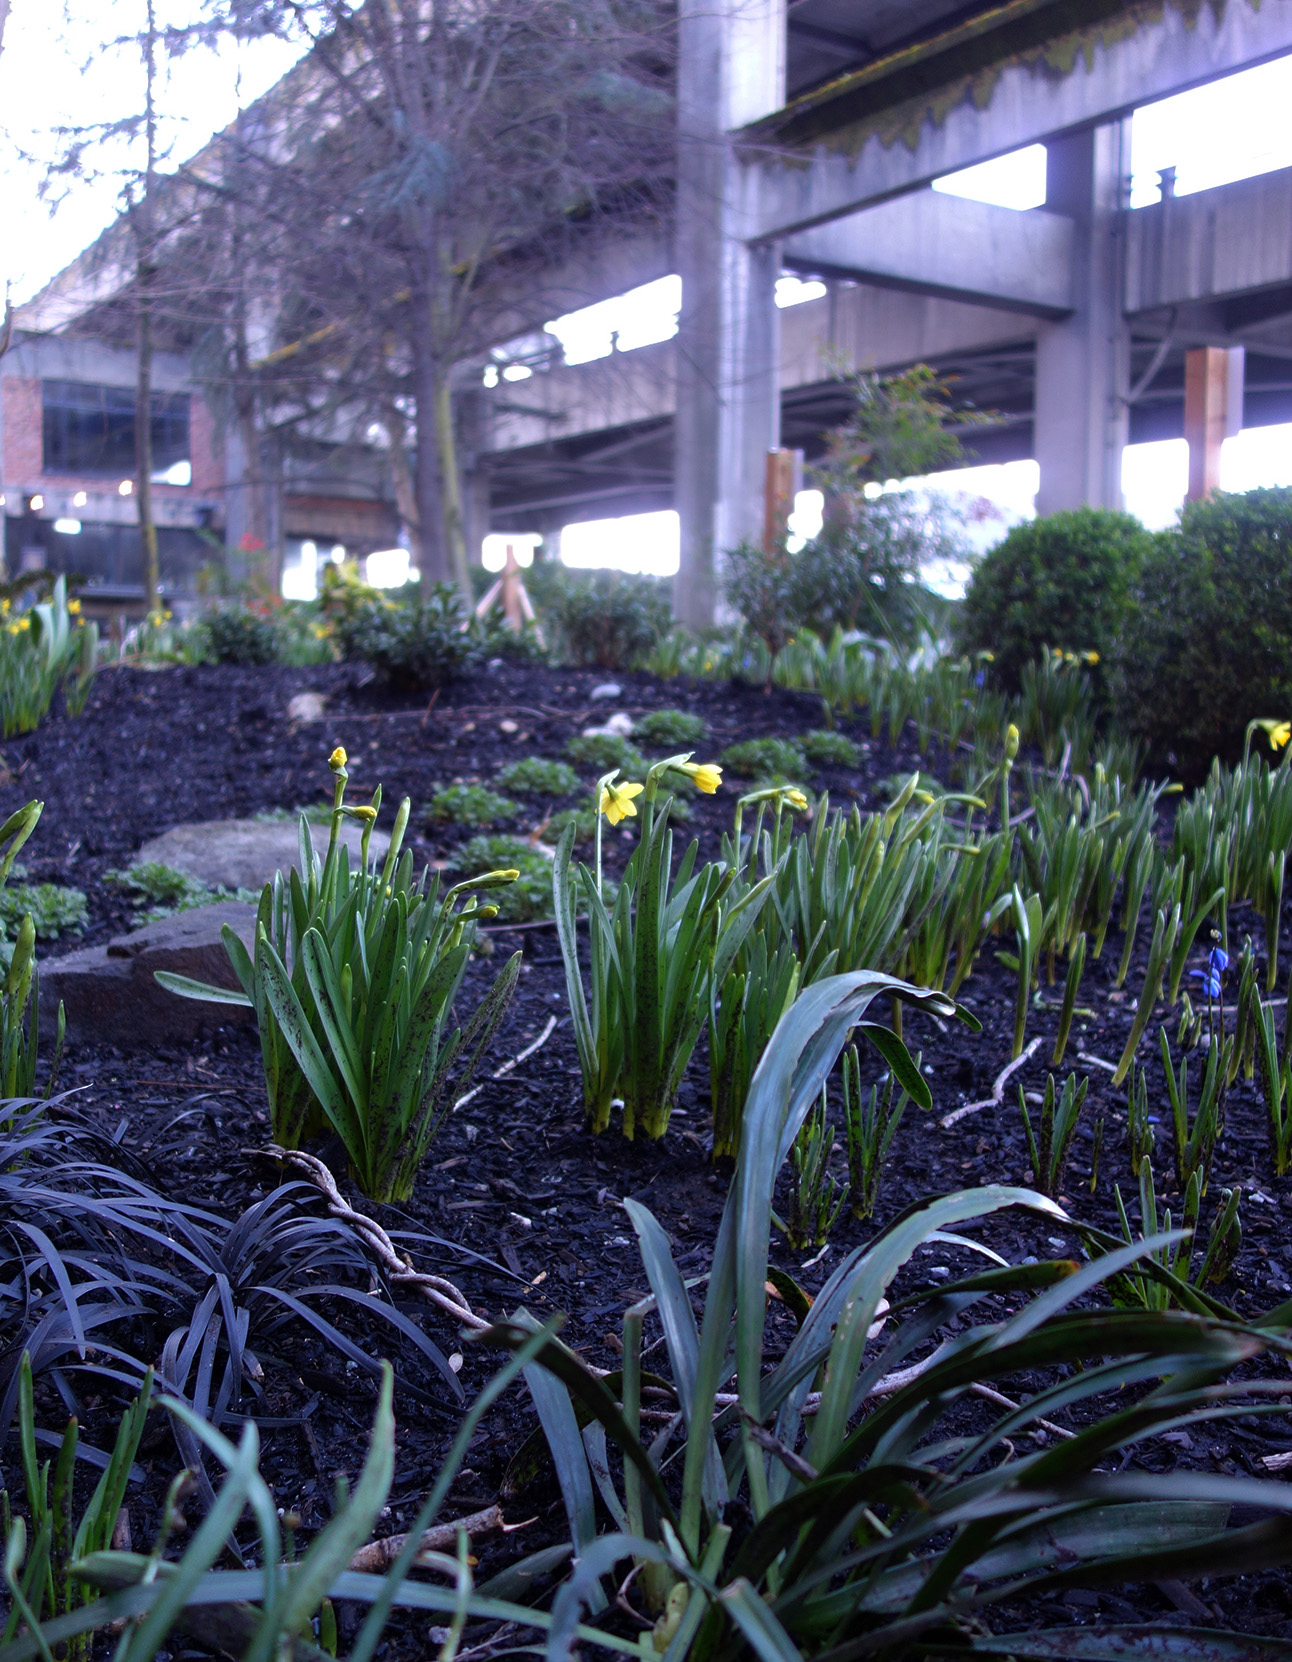 Daffodils brighten up our garden in the shadow of the viaduct.